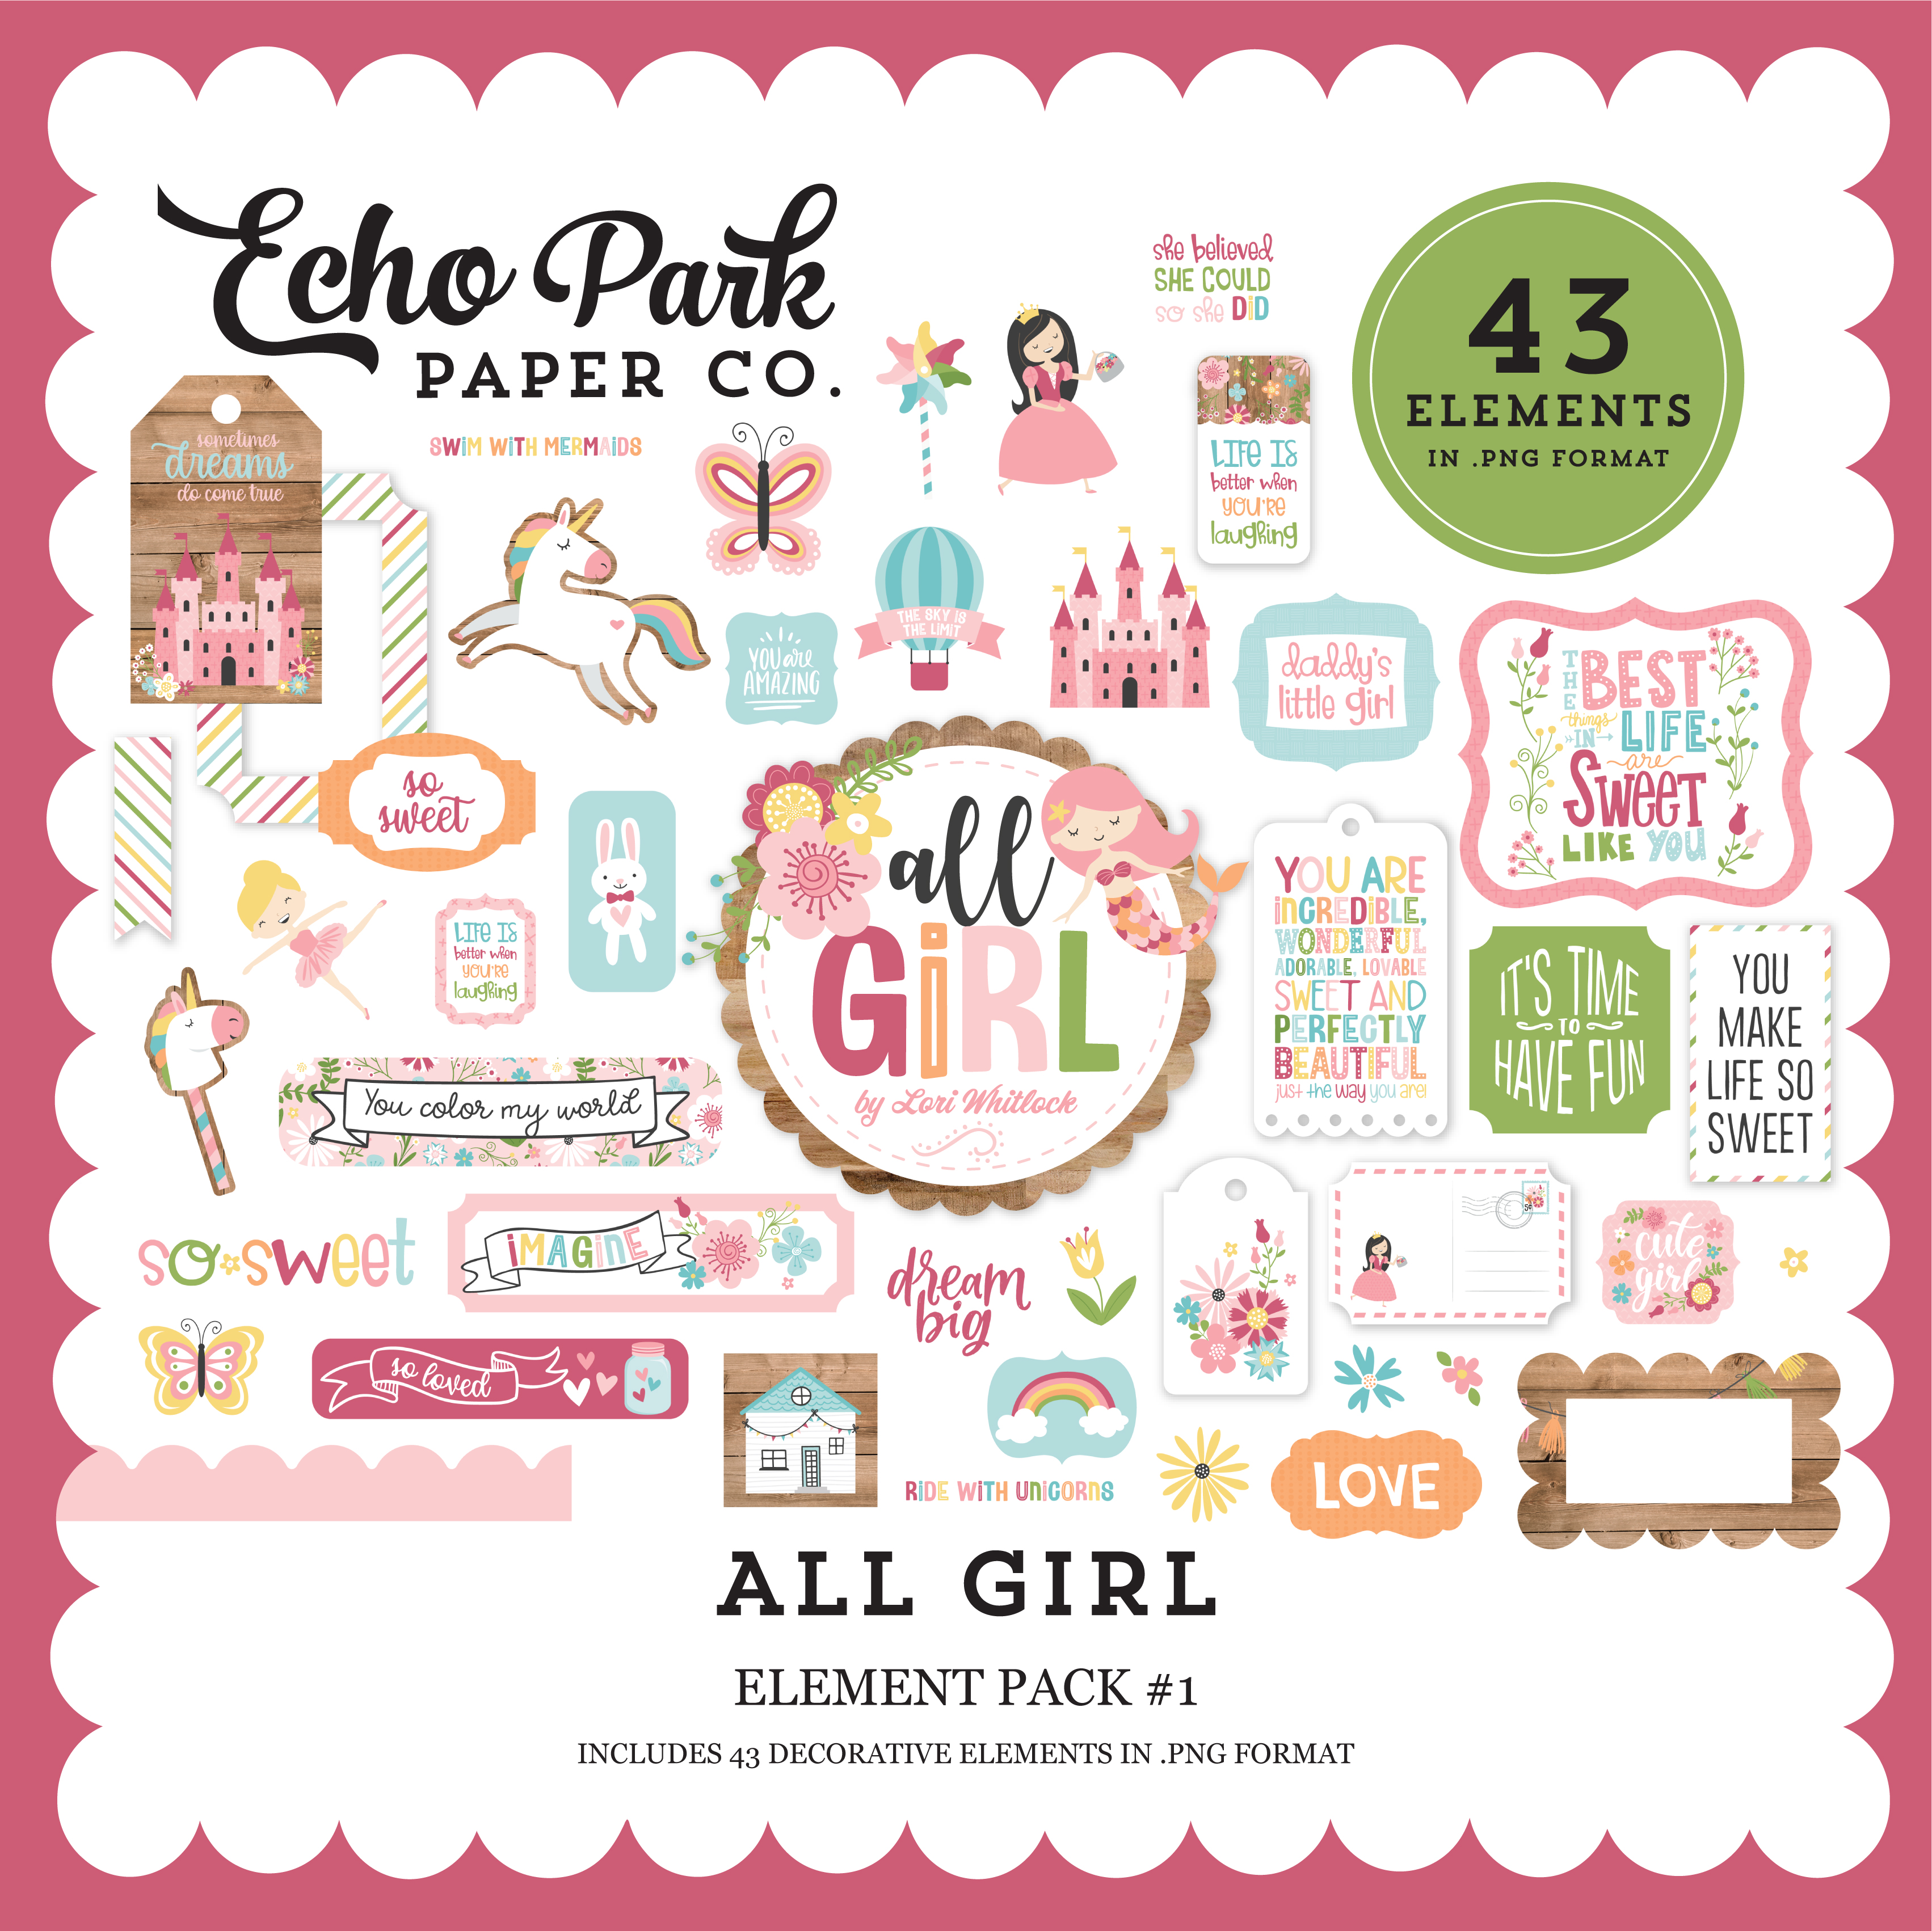 All Girl Element Pack #1